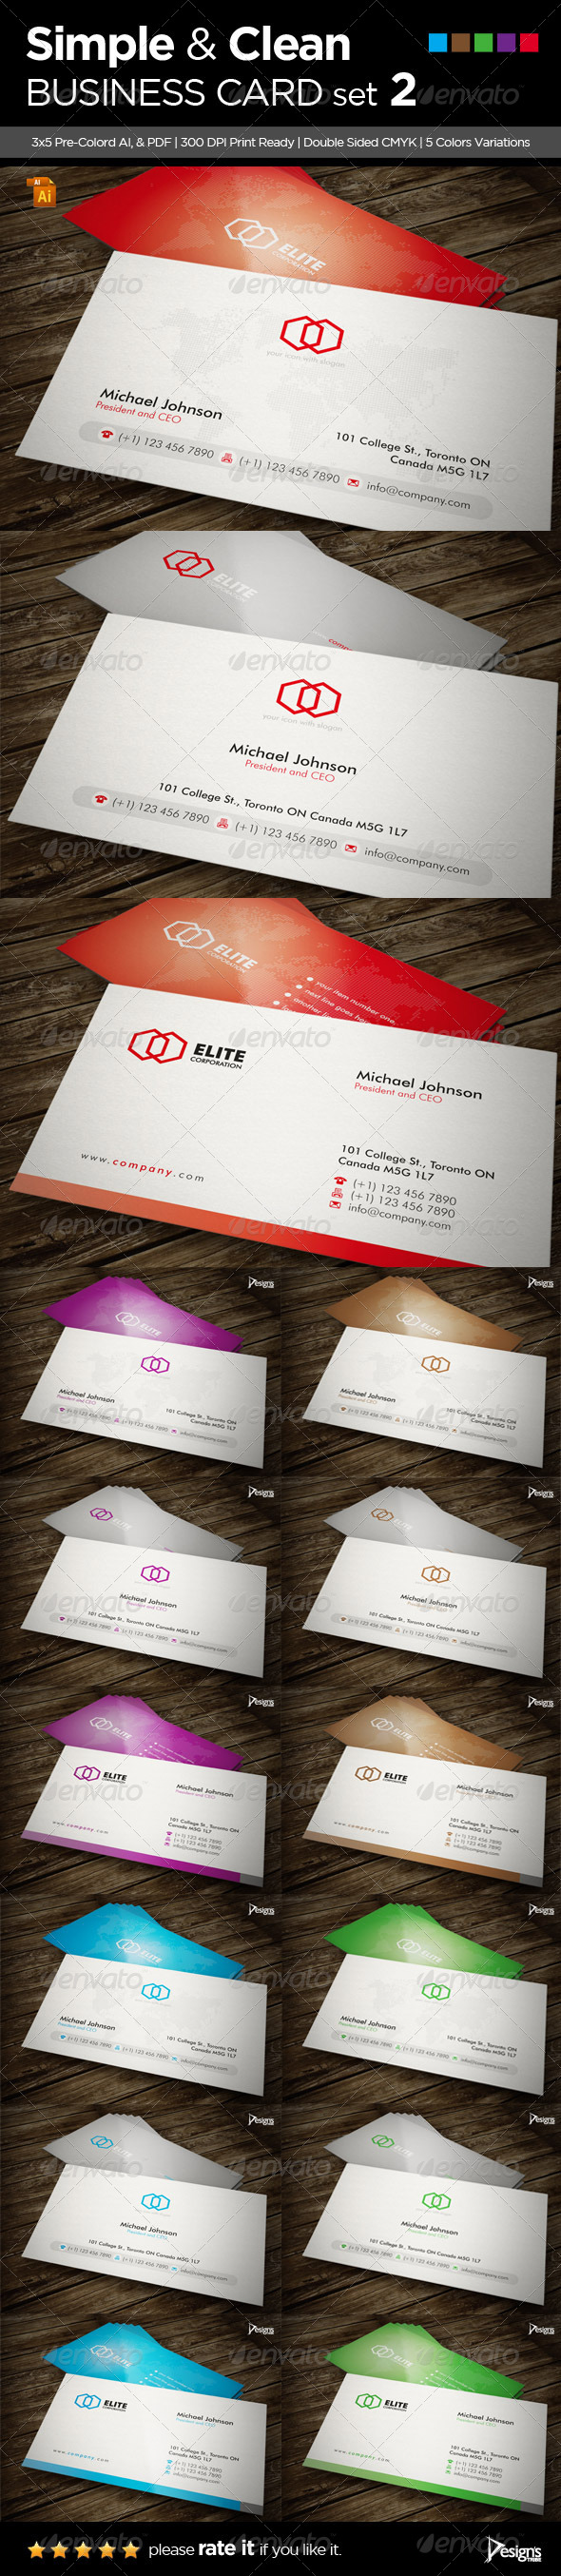 GraphicRiver 3in1 Simple and Clean Business Card 5438115